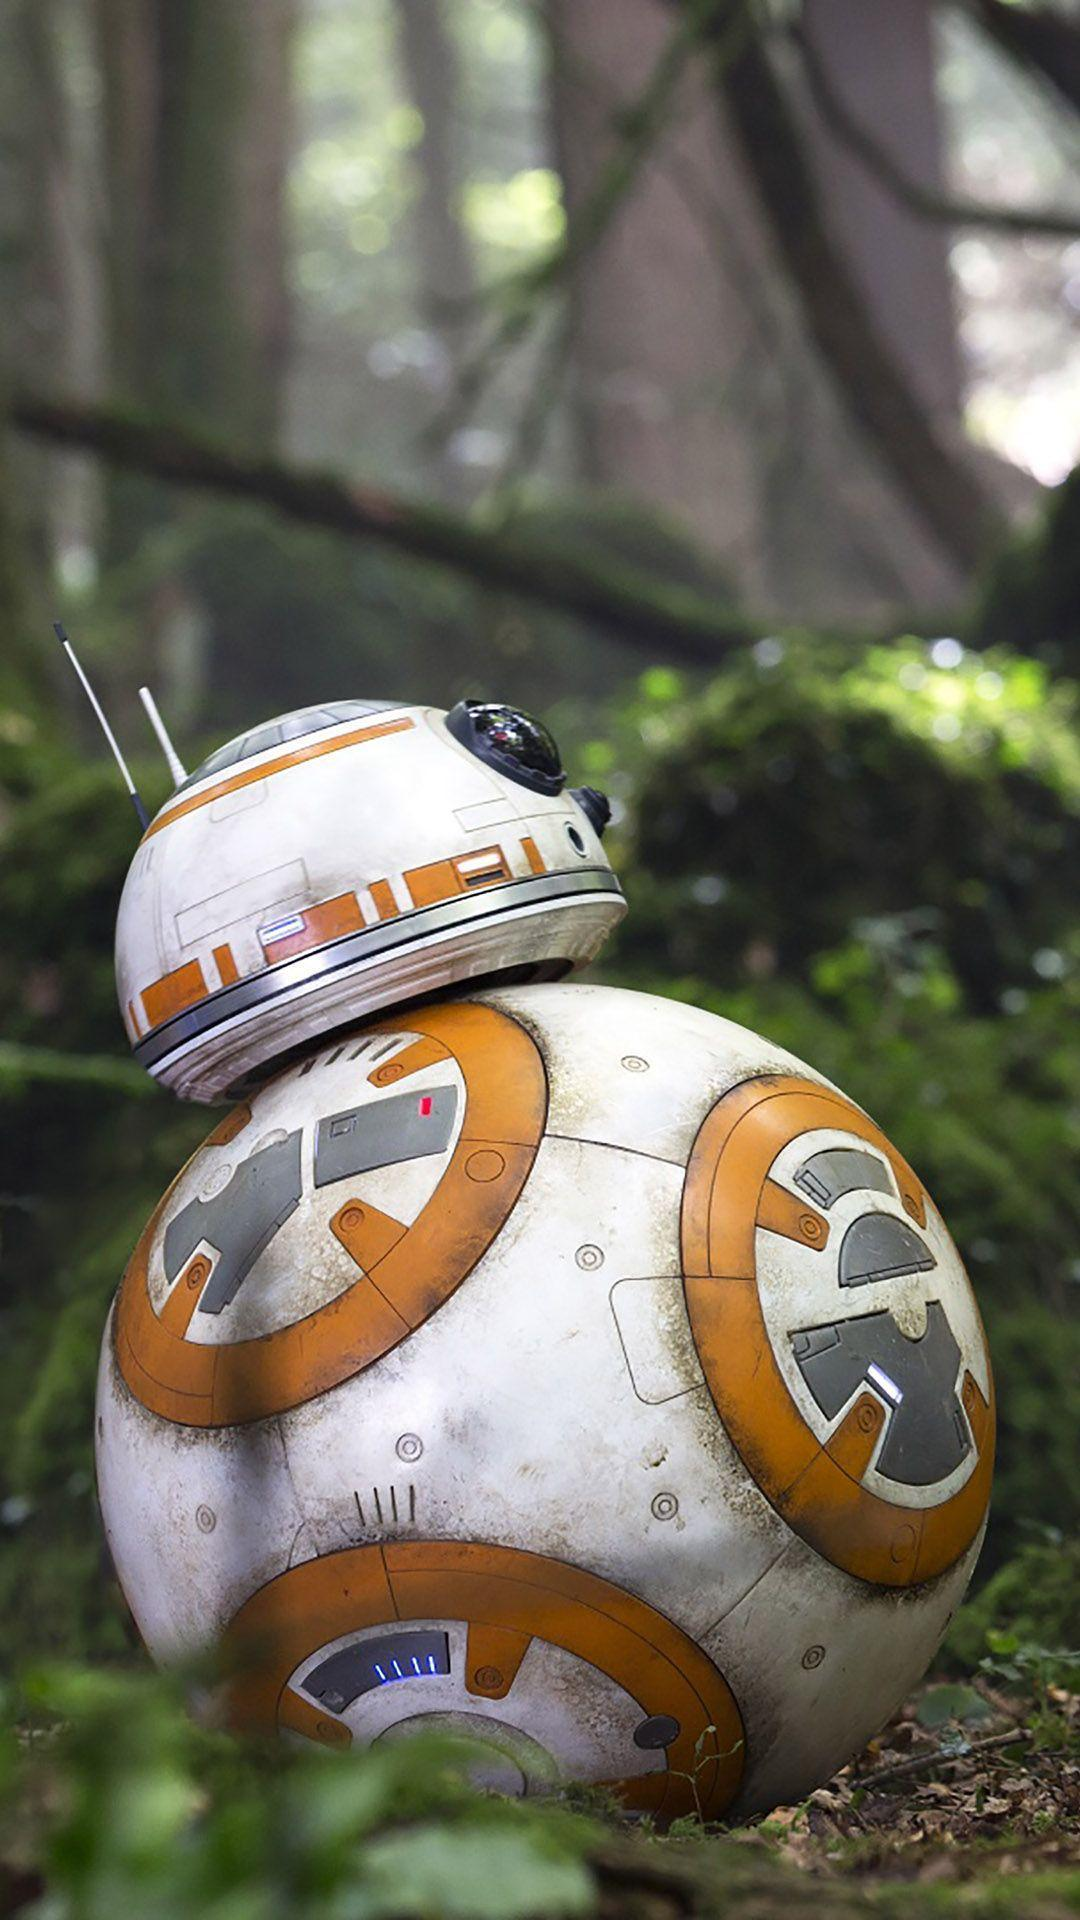 BB8 Wallpapers - Wallpaper Cave